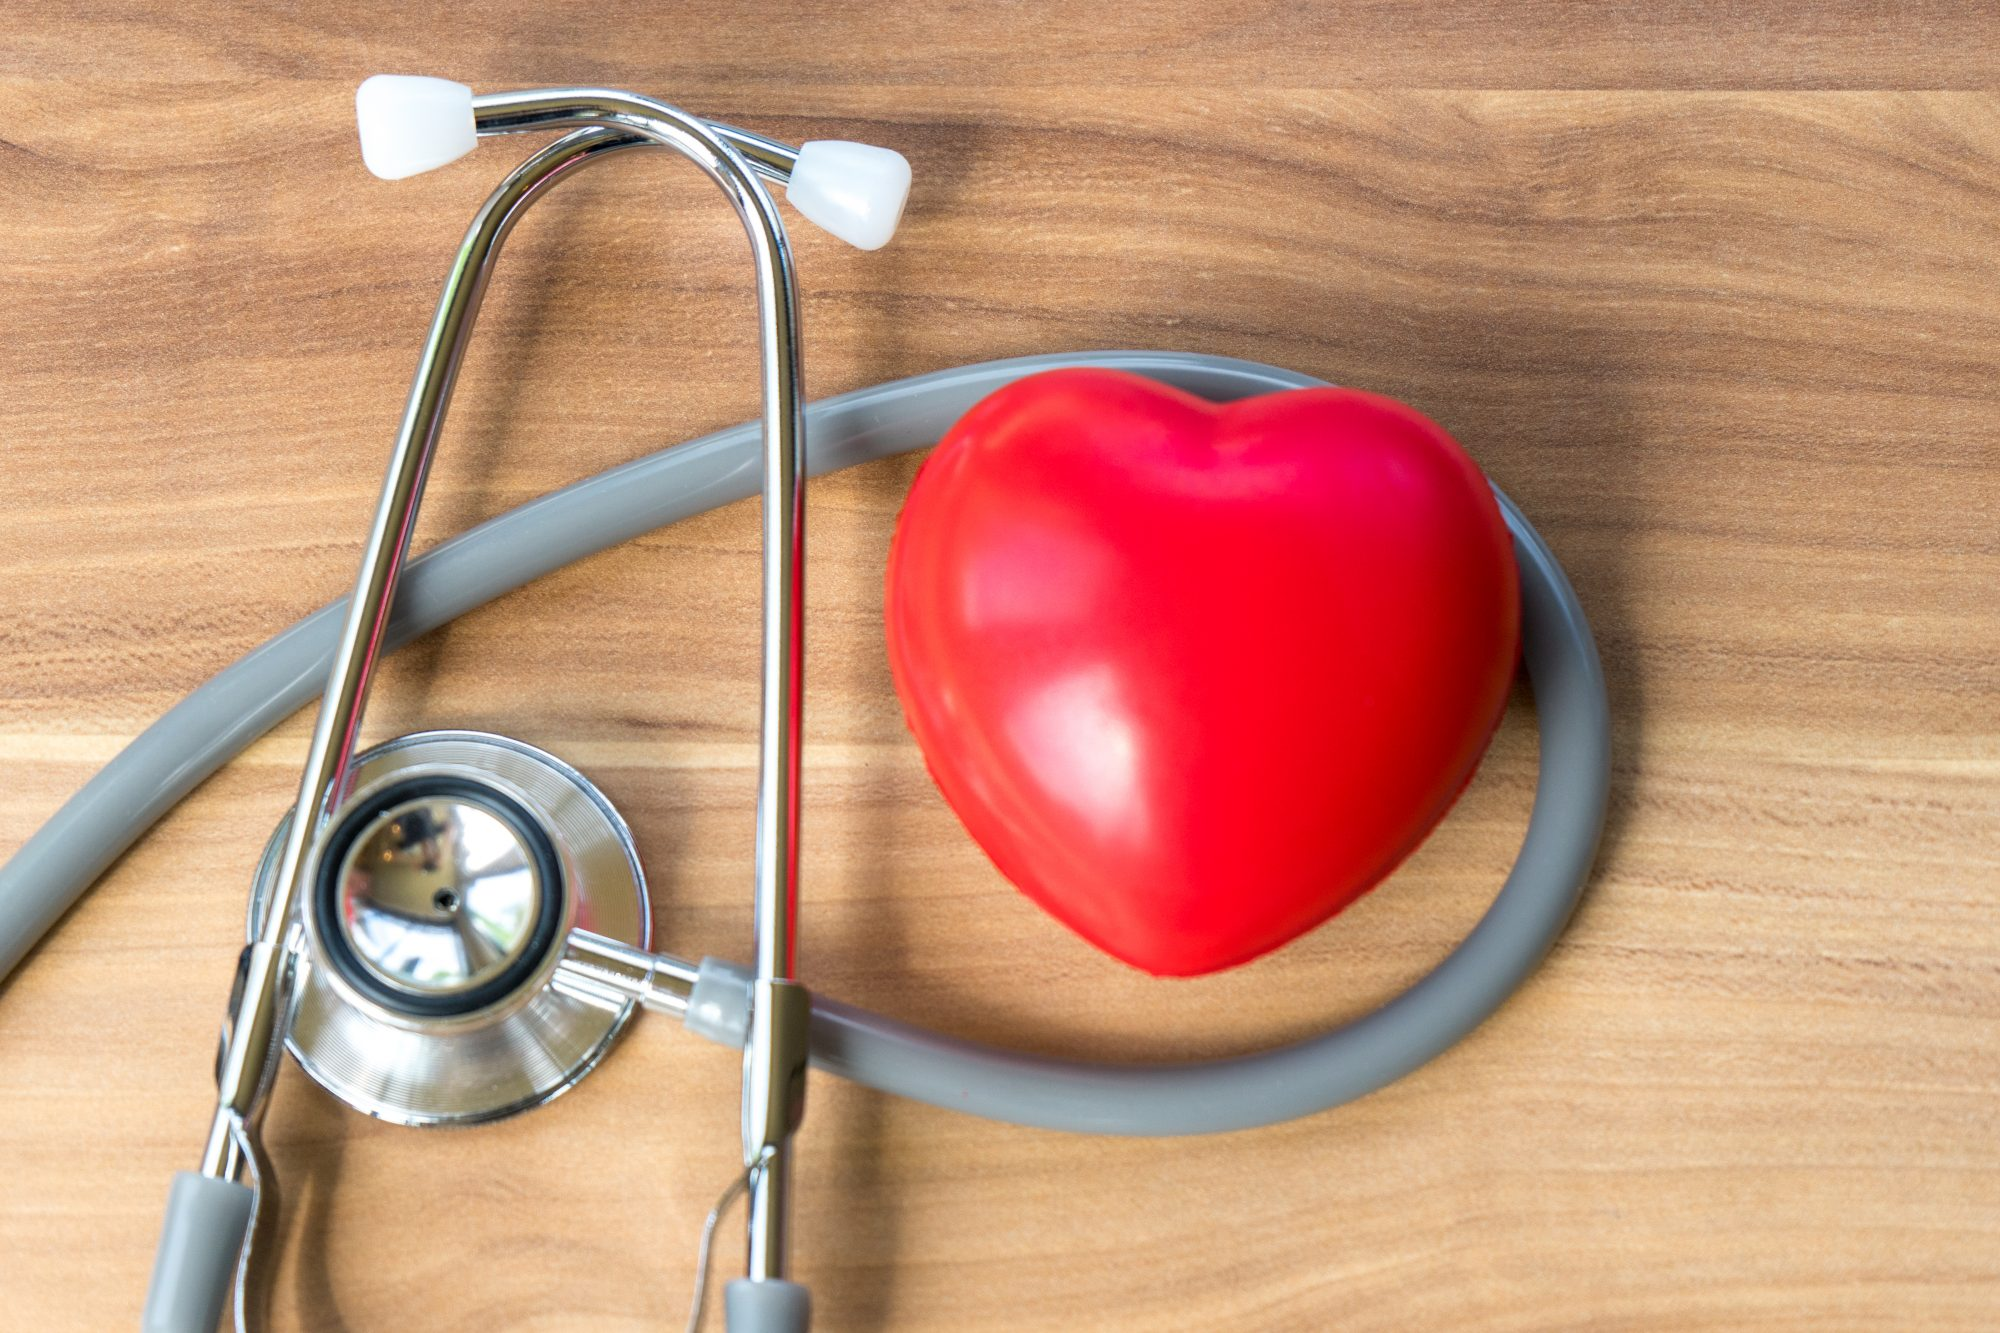 Heart Model and Stethoscope